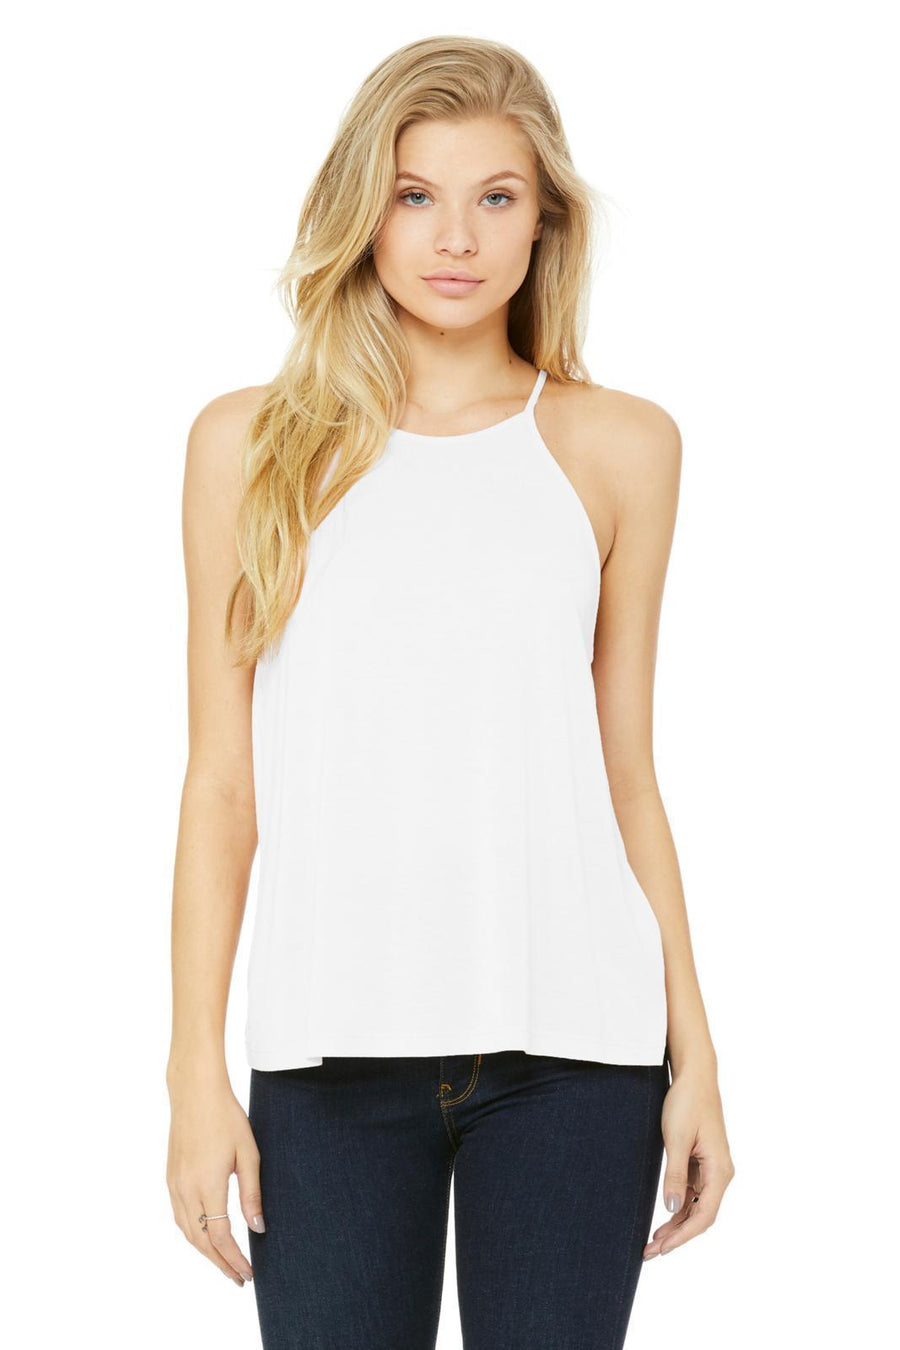 Tribal Greek Tank - Bella Flowy High Neck, Ladies, Sunny and Southern, - Sunny and Southern,